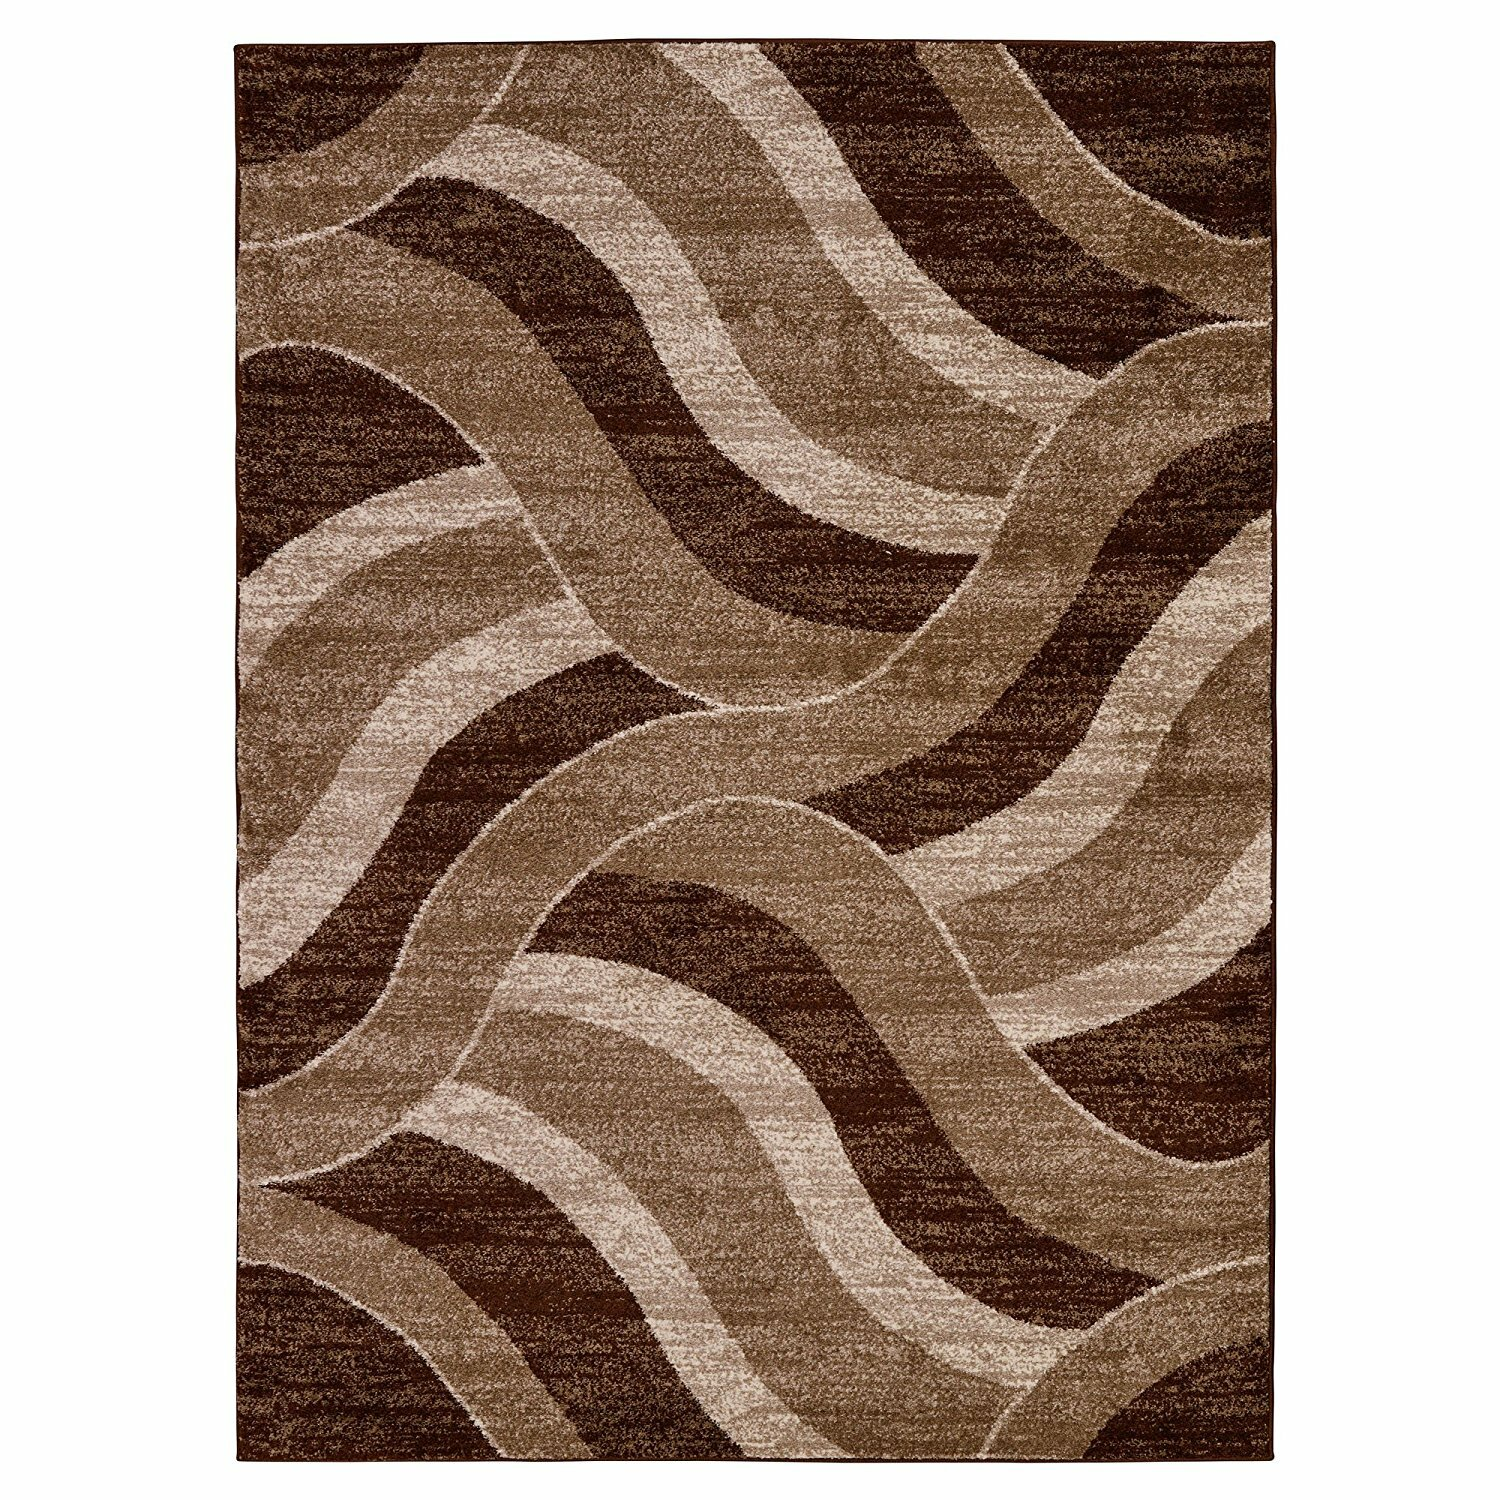 Boyster Abstract Waves Brown Beige Area Rug